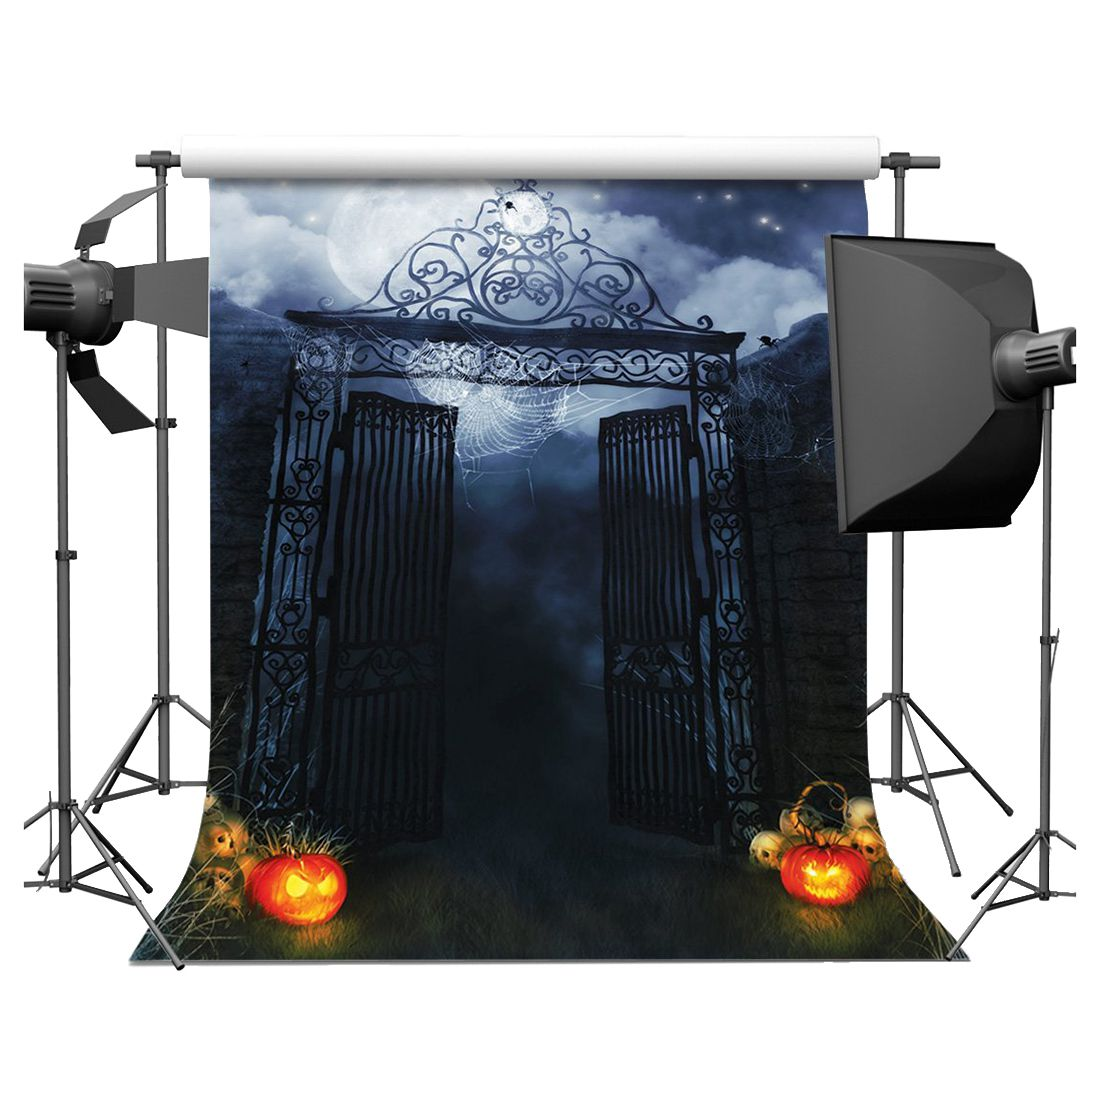 Halloween Vinyl Photography Backdrop Photo Background Studio Prop 5*7ft, Iron gate shanny autumn backdrop vinyl photography backdrop prop custom studio backgrounds njy33